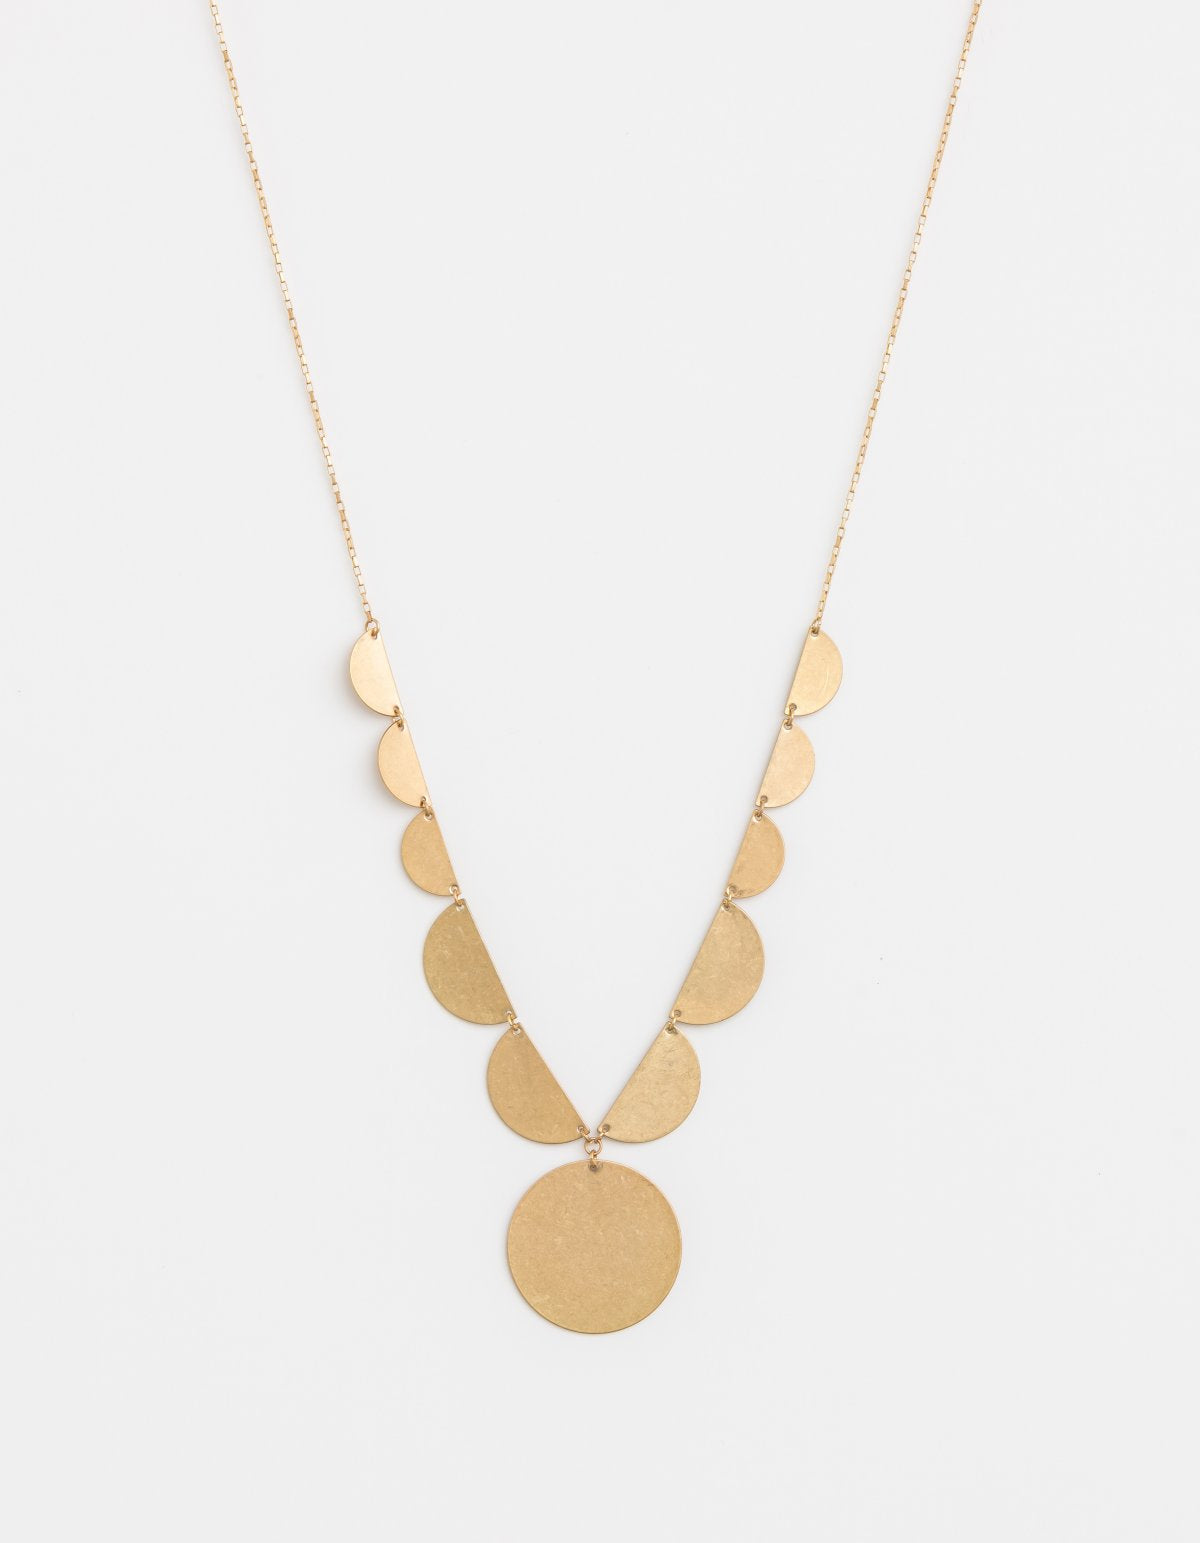 Necklace Worn Gold Crescent